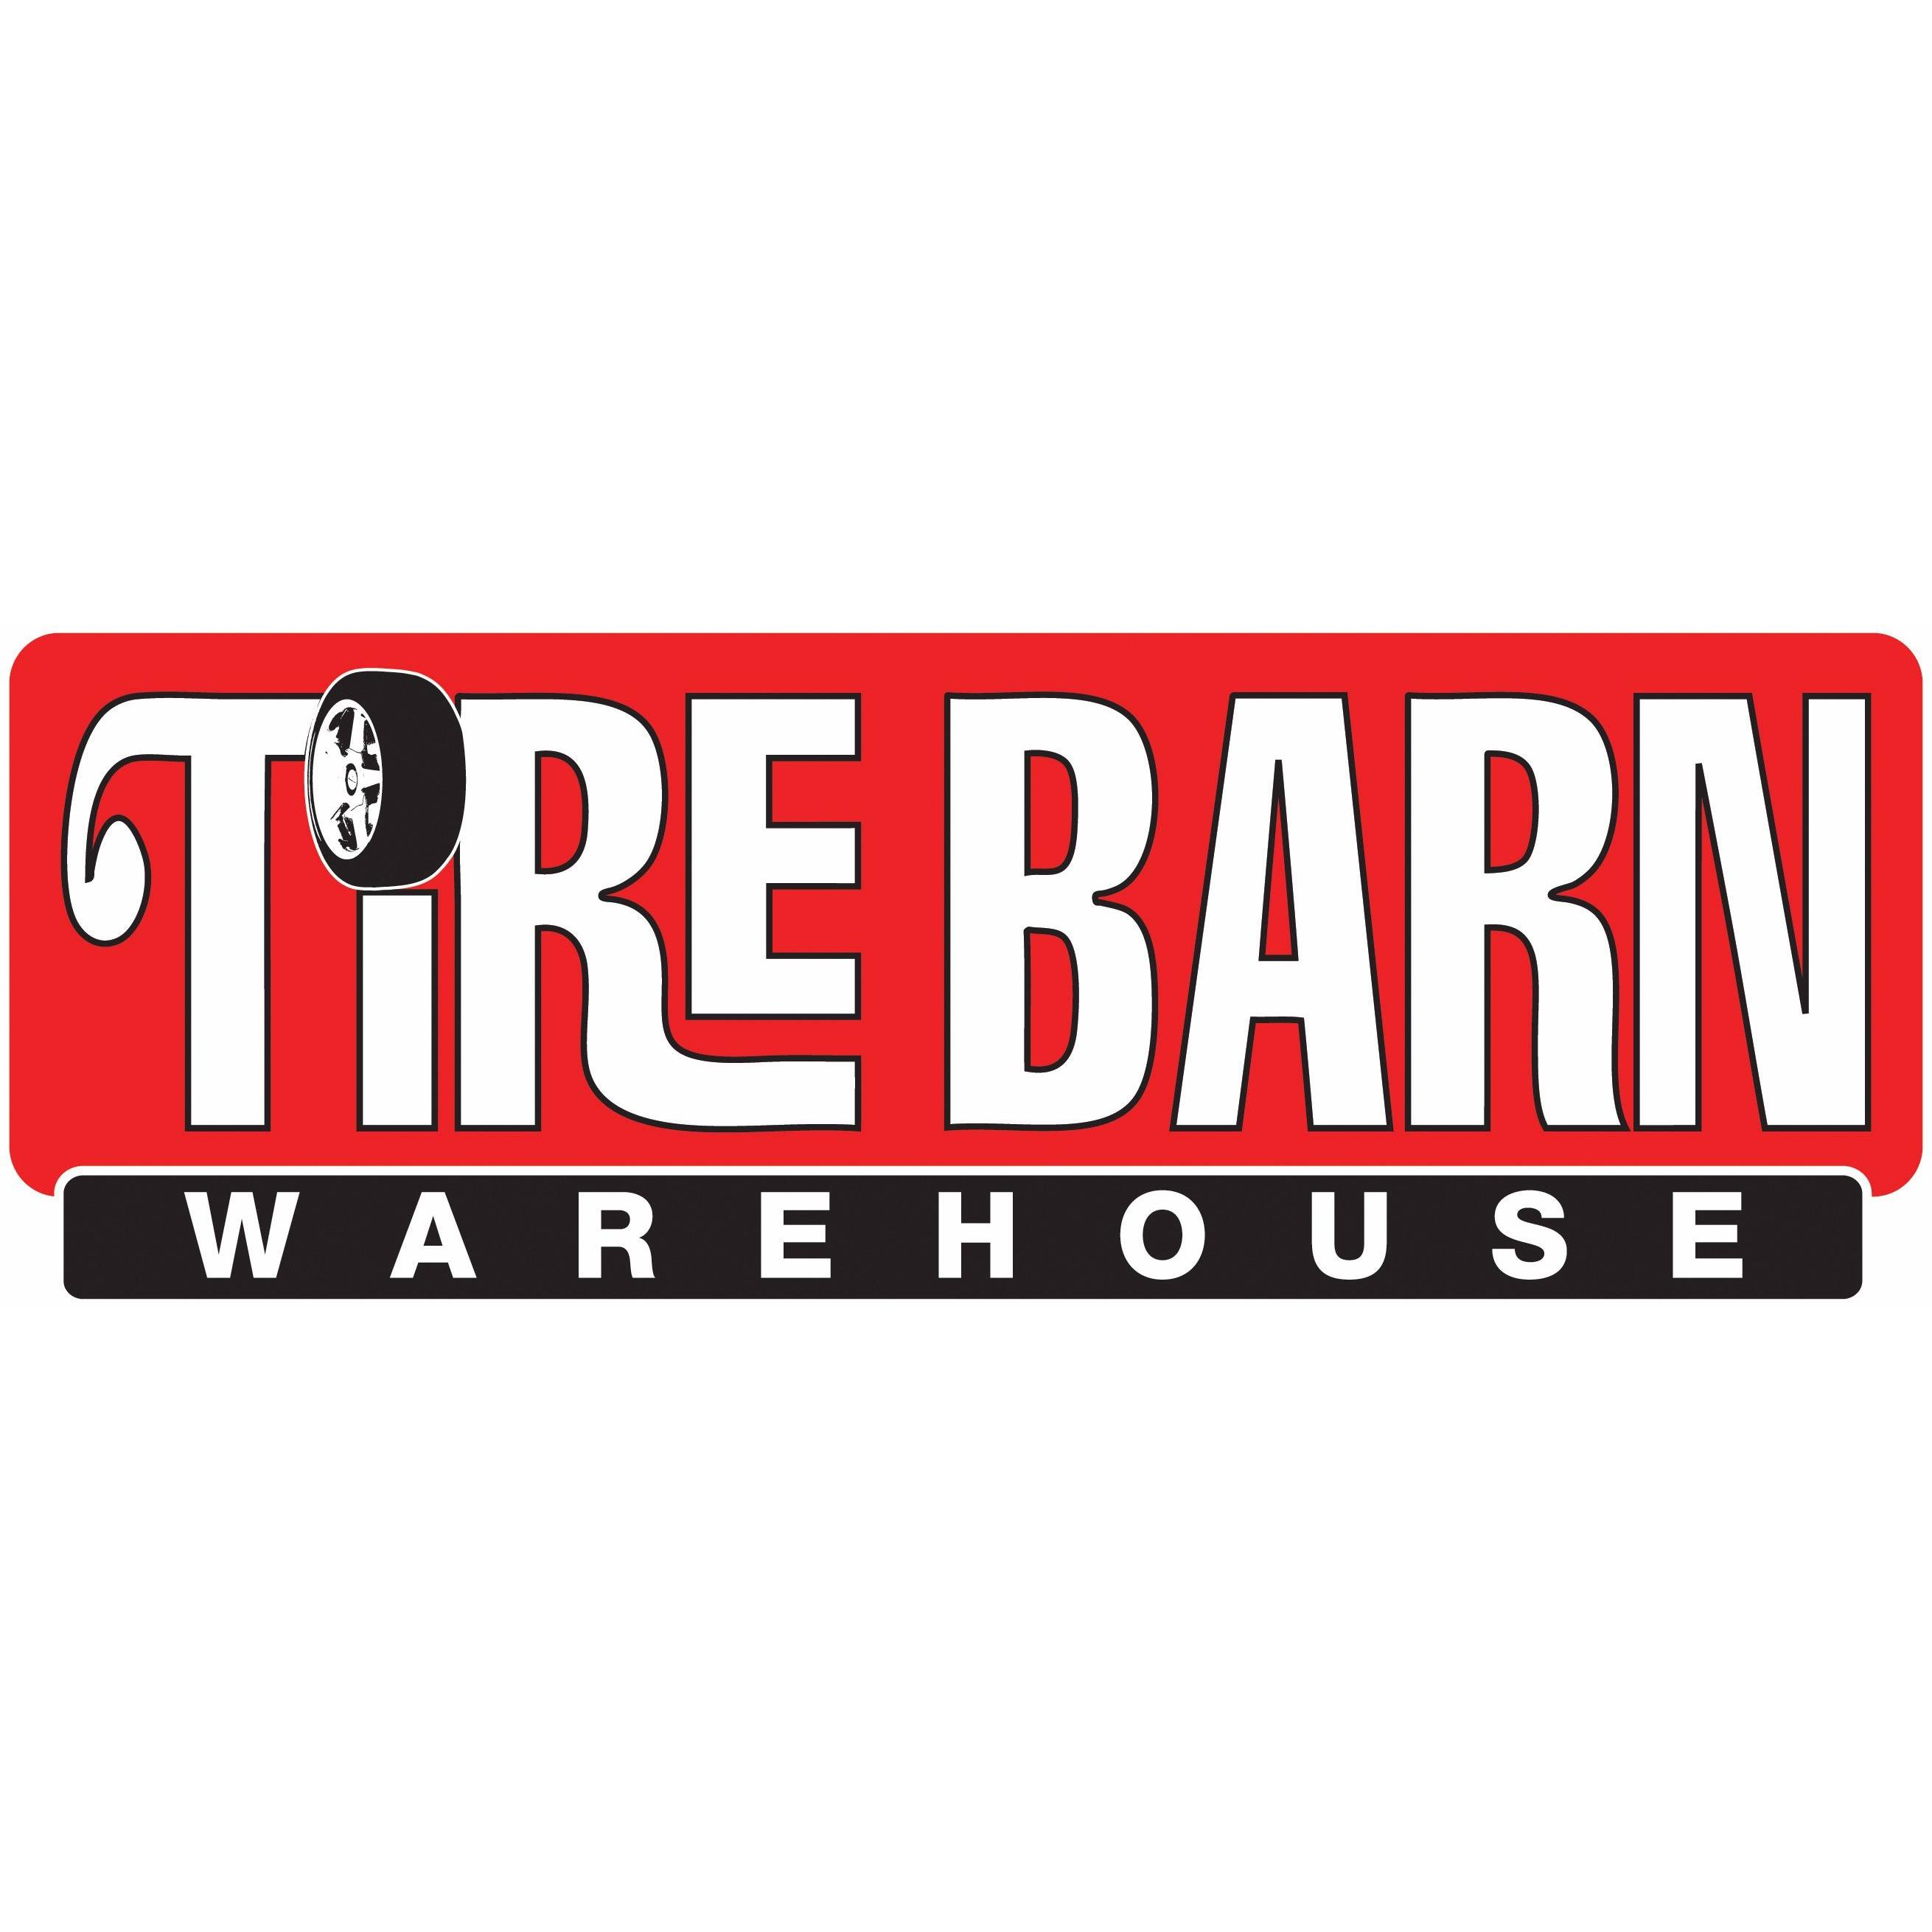 Tire barn at 3205 bristol highway johnson city tn brakes tires automotive maintenance and repair